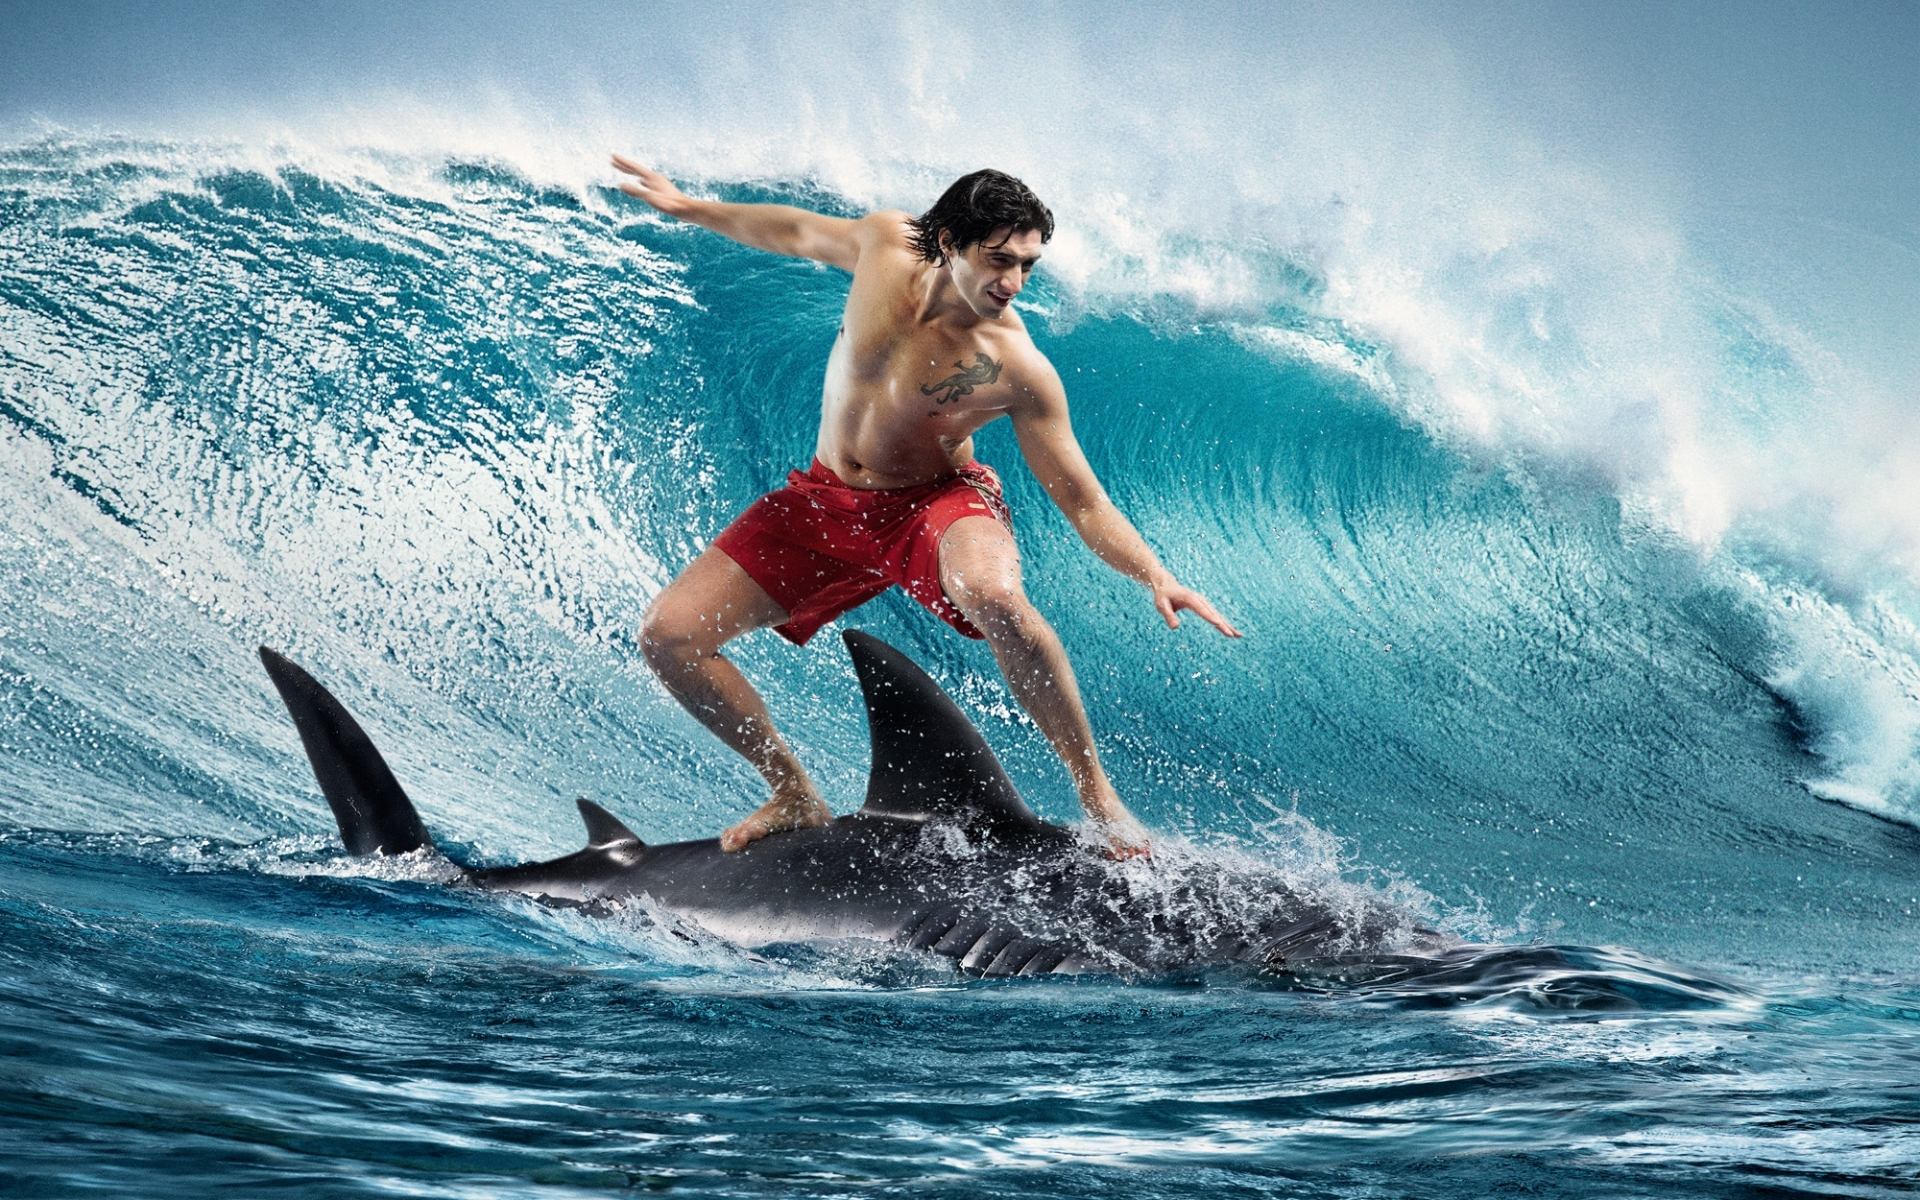 Surfing Backgrounds   Wallpaper High Definition High Quality 1920x1200